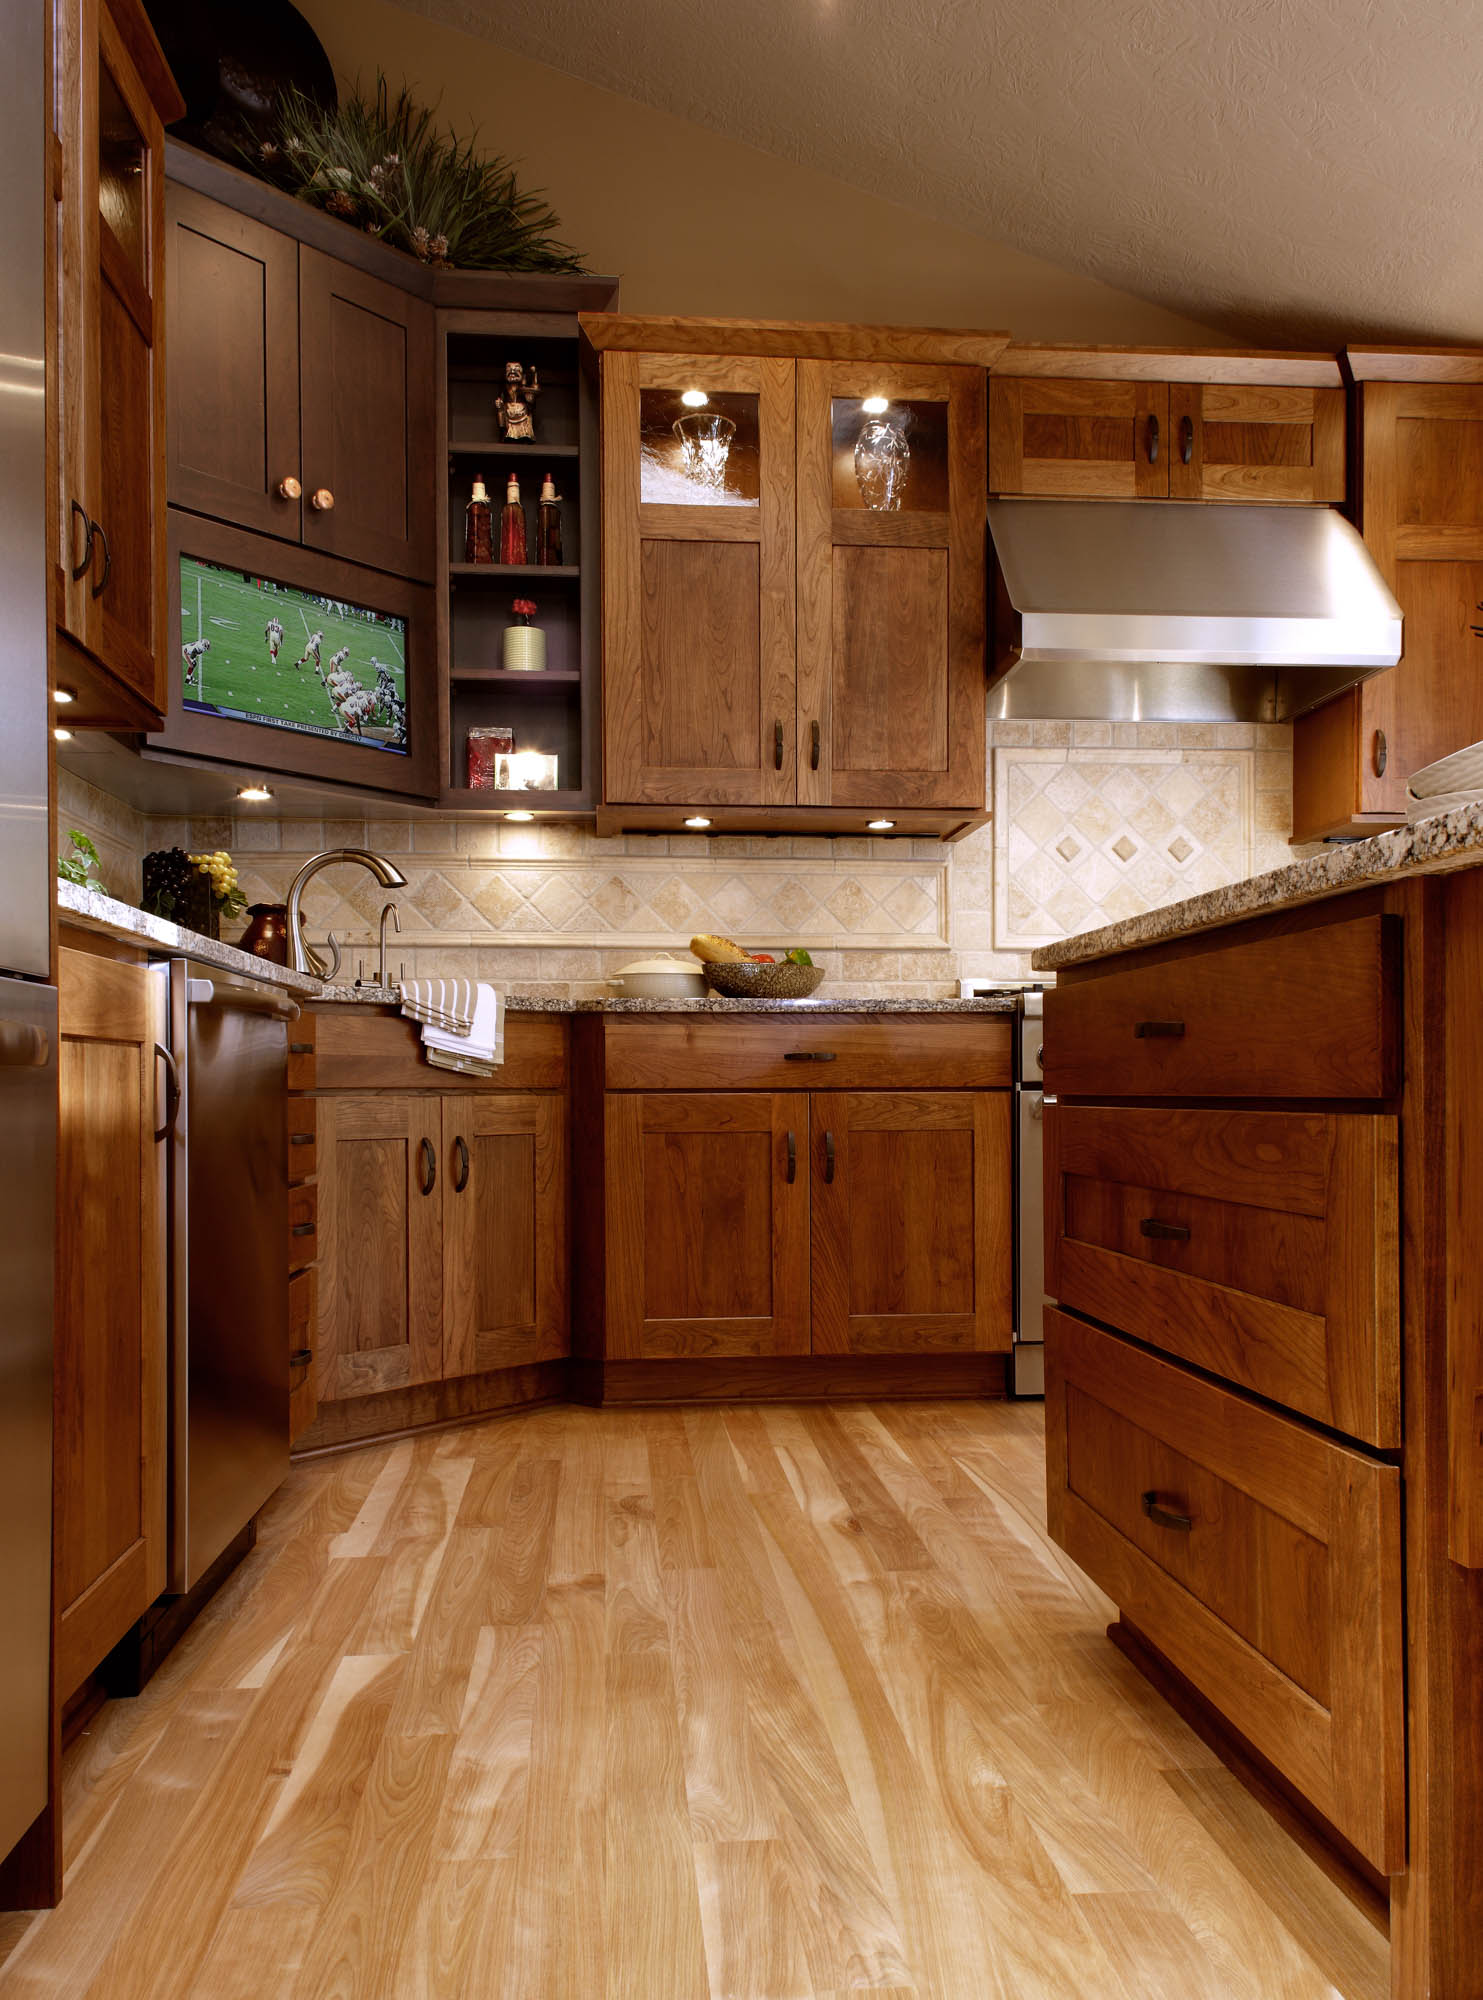 Stained Kitchen Cabinets In Truffle And Coffee By Showplace Cabinetry    View 3